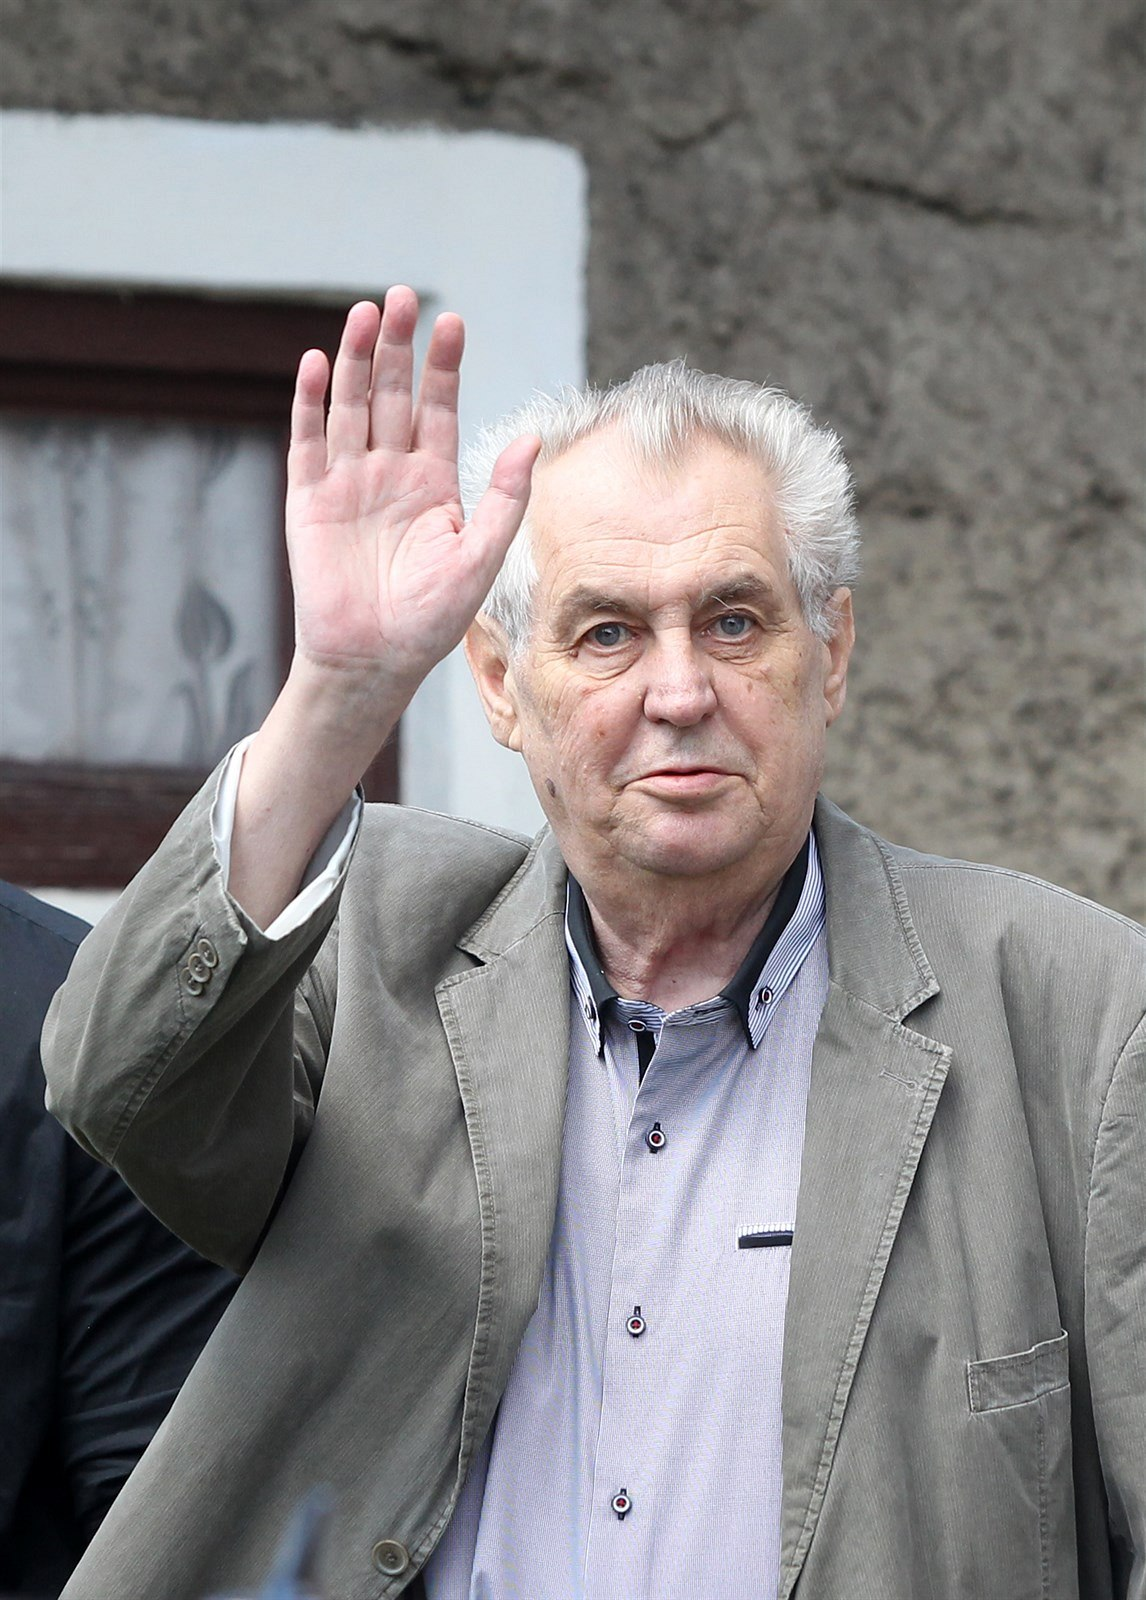 Zeman - Weary from Hiding from Debates, Steps Out to Deliver Scandalous Speech - Czech Points